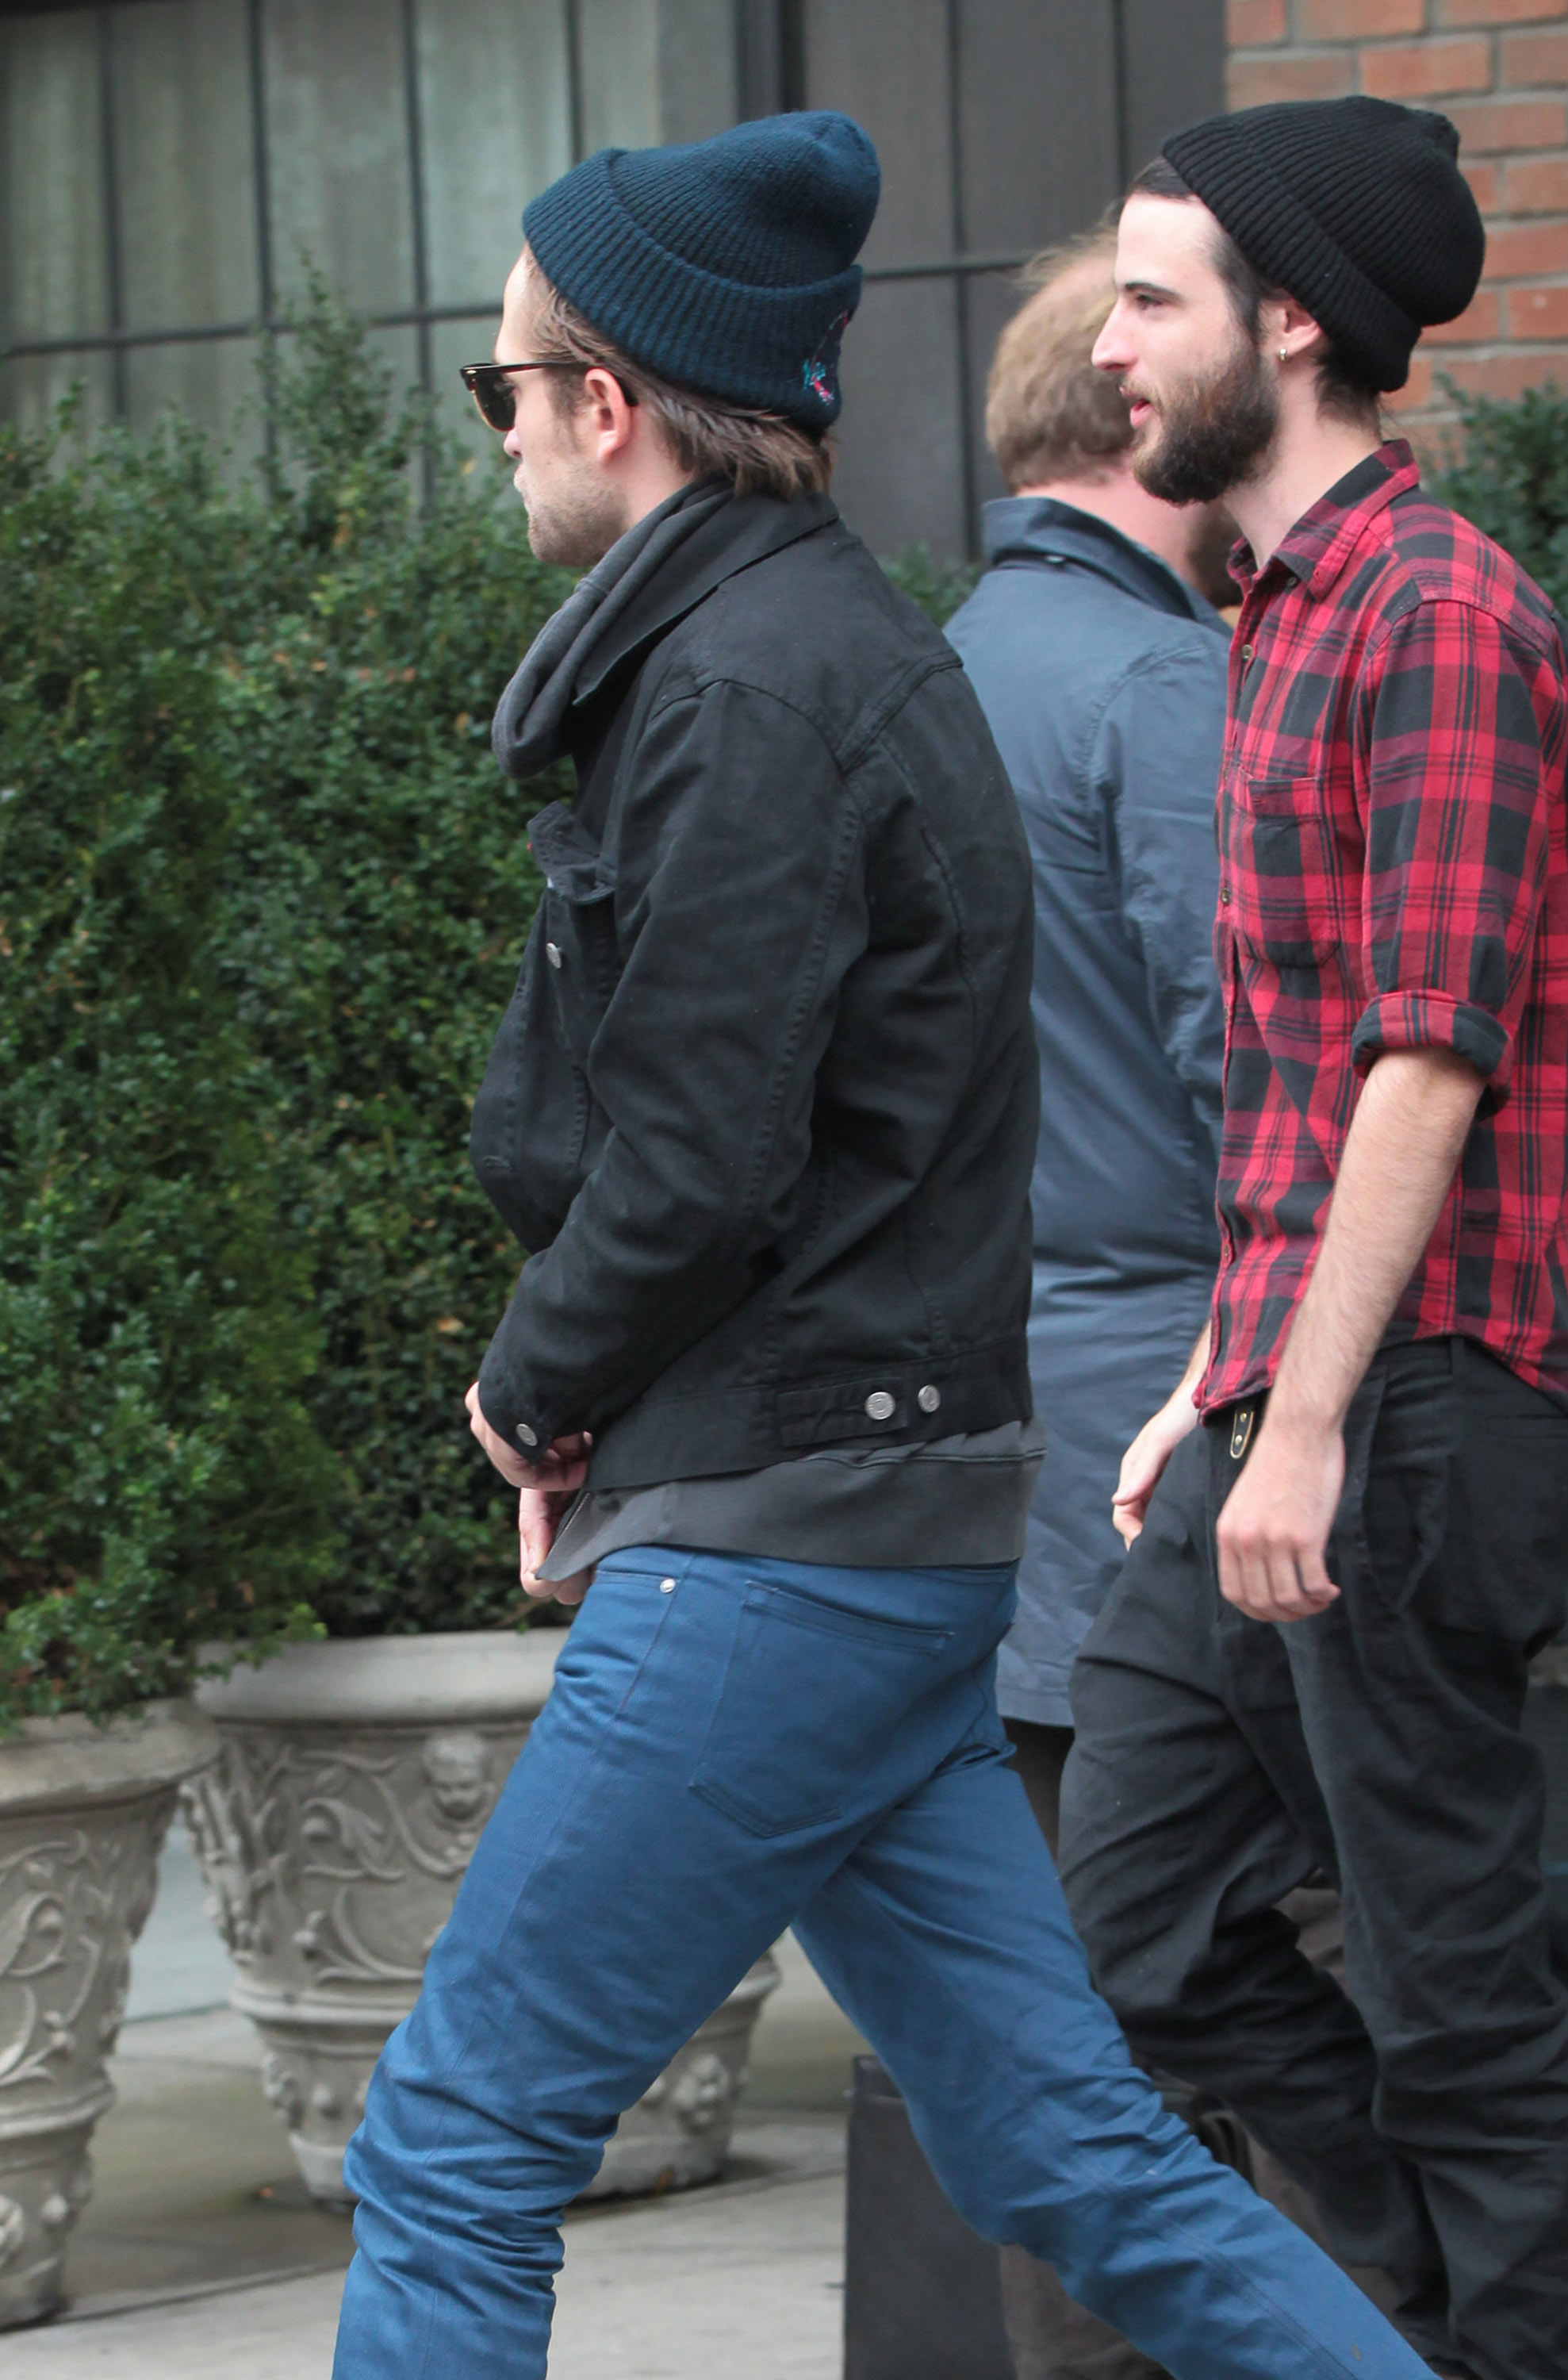 Robert Pattinson and Tom Sturridge left the Bowery Hotel after spending some time together in the afternoon.